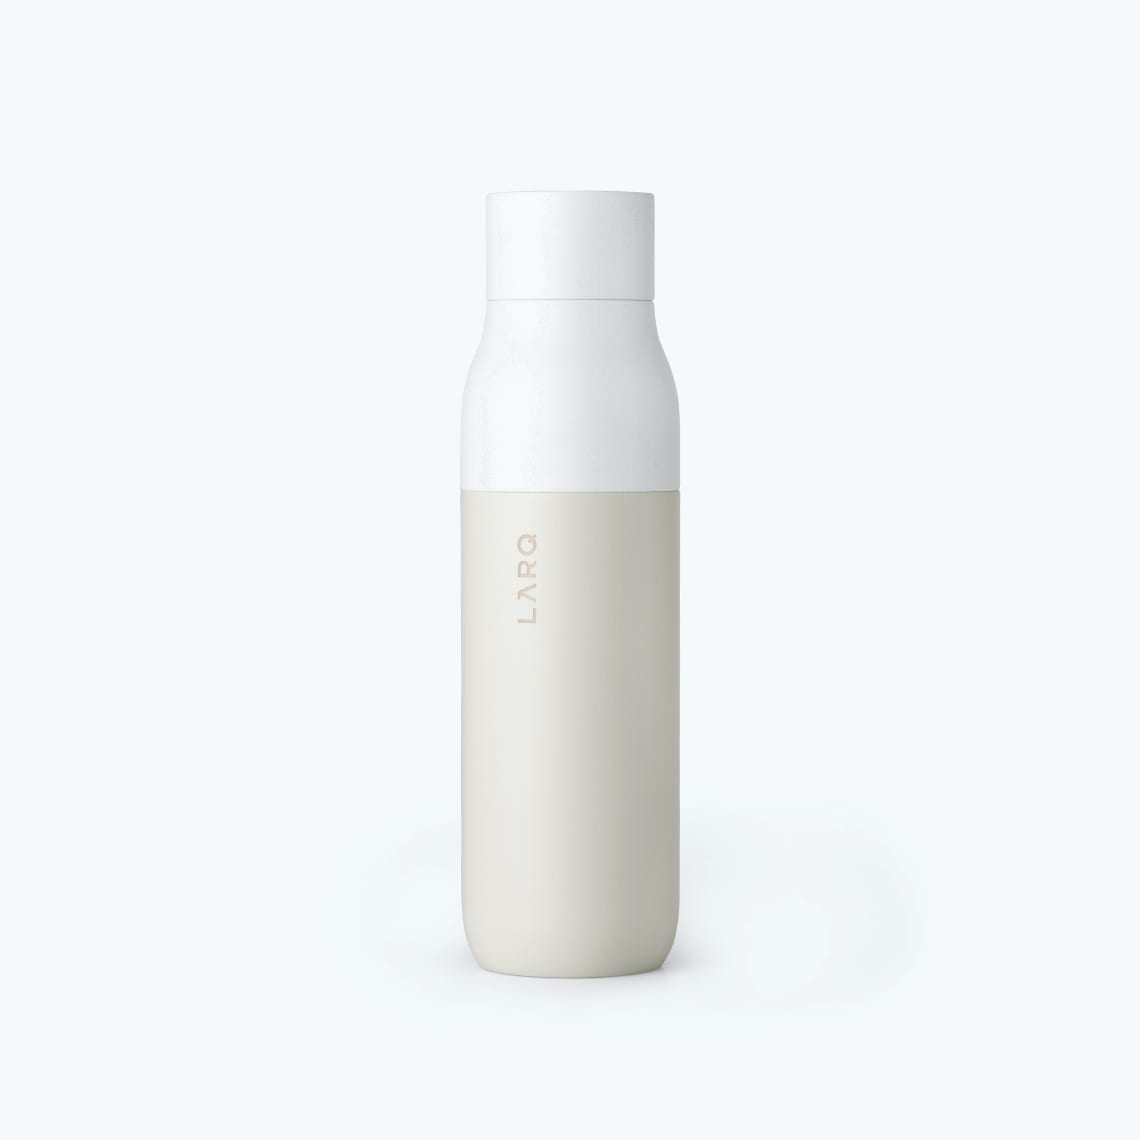 LARQ Bottle PureVis™ Granite White main